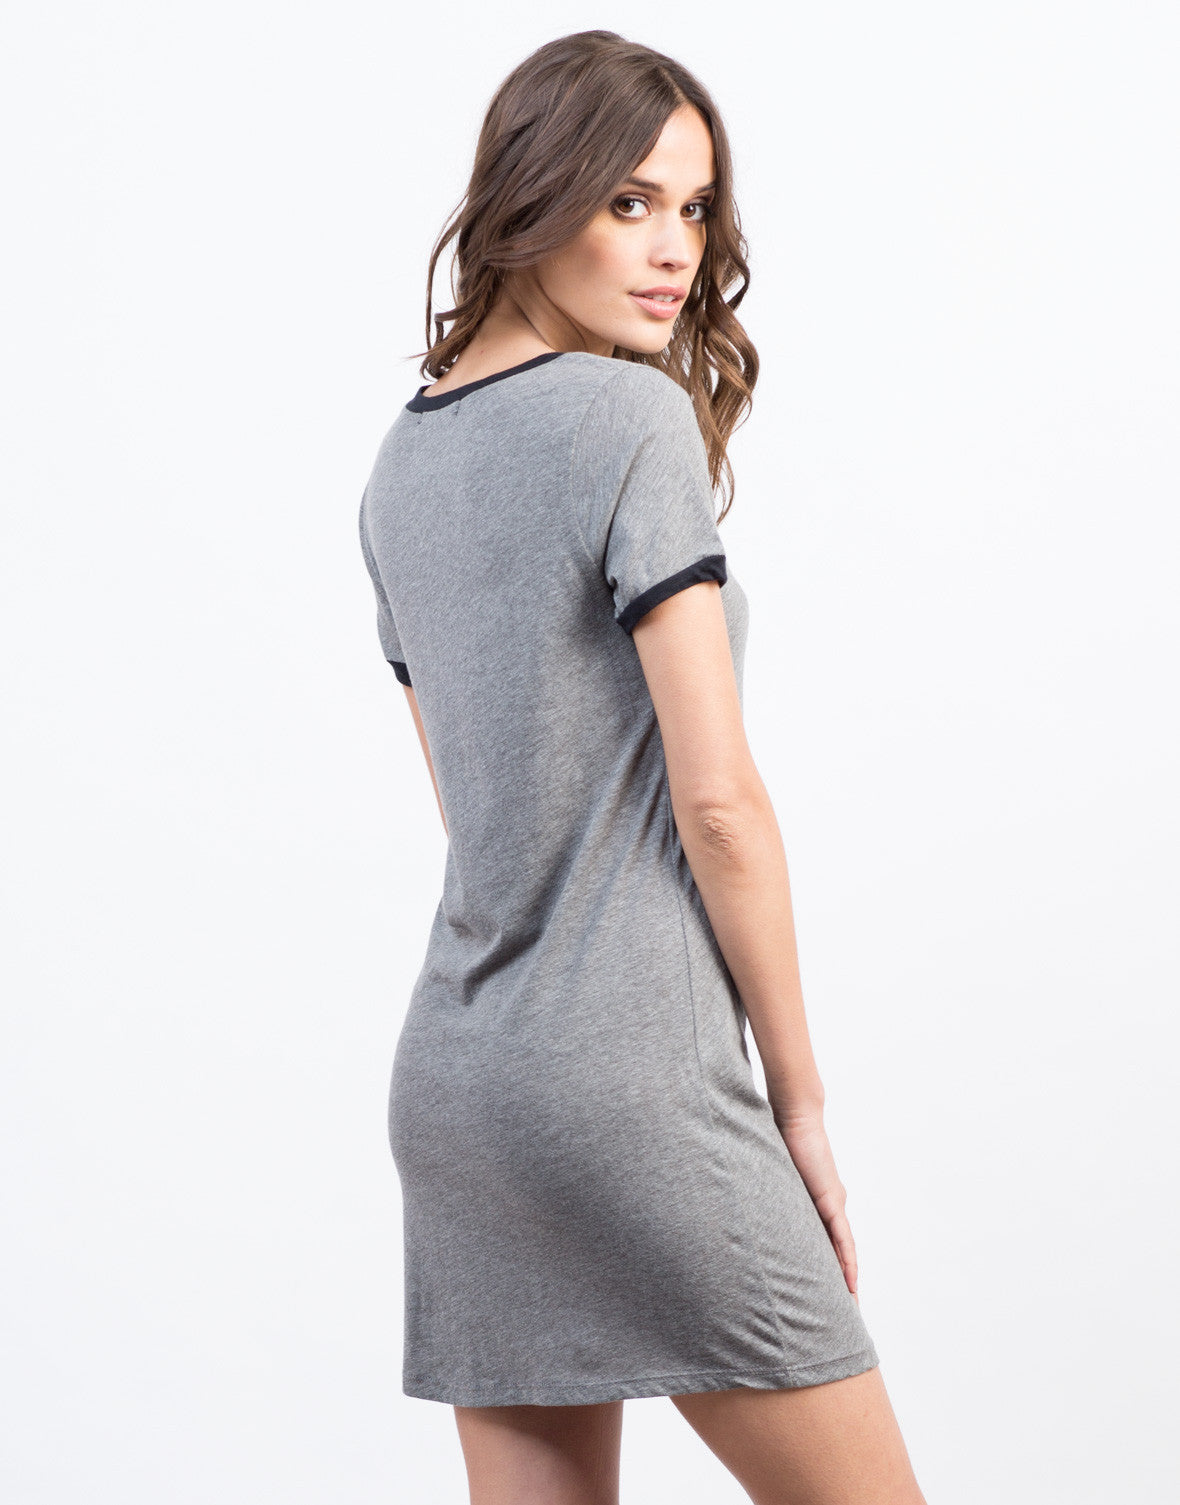 Back View of Round Neck Simple Tee Dress